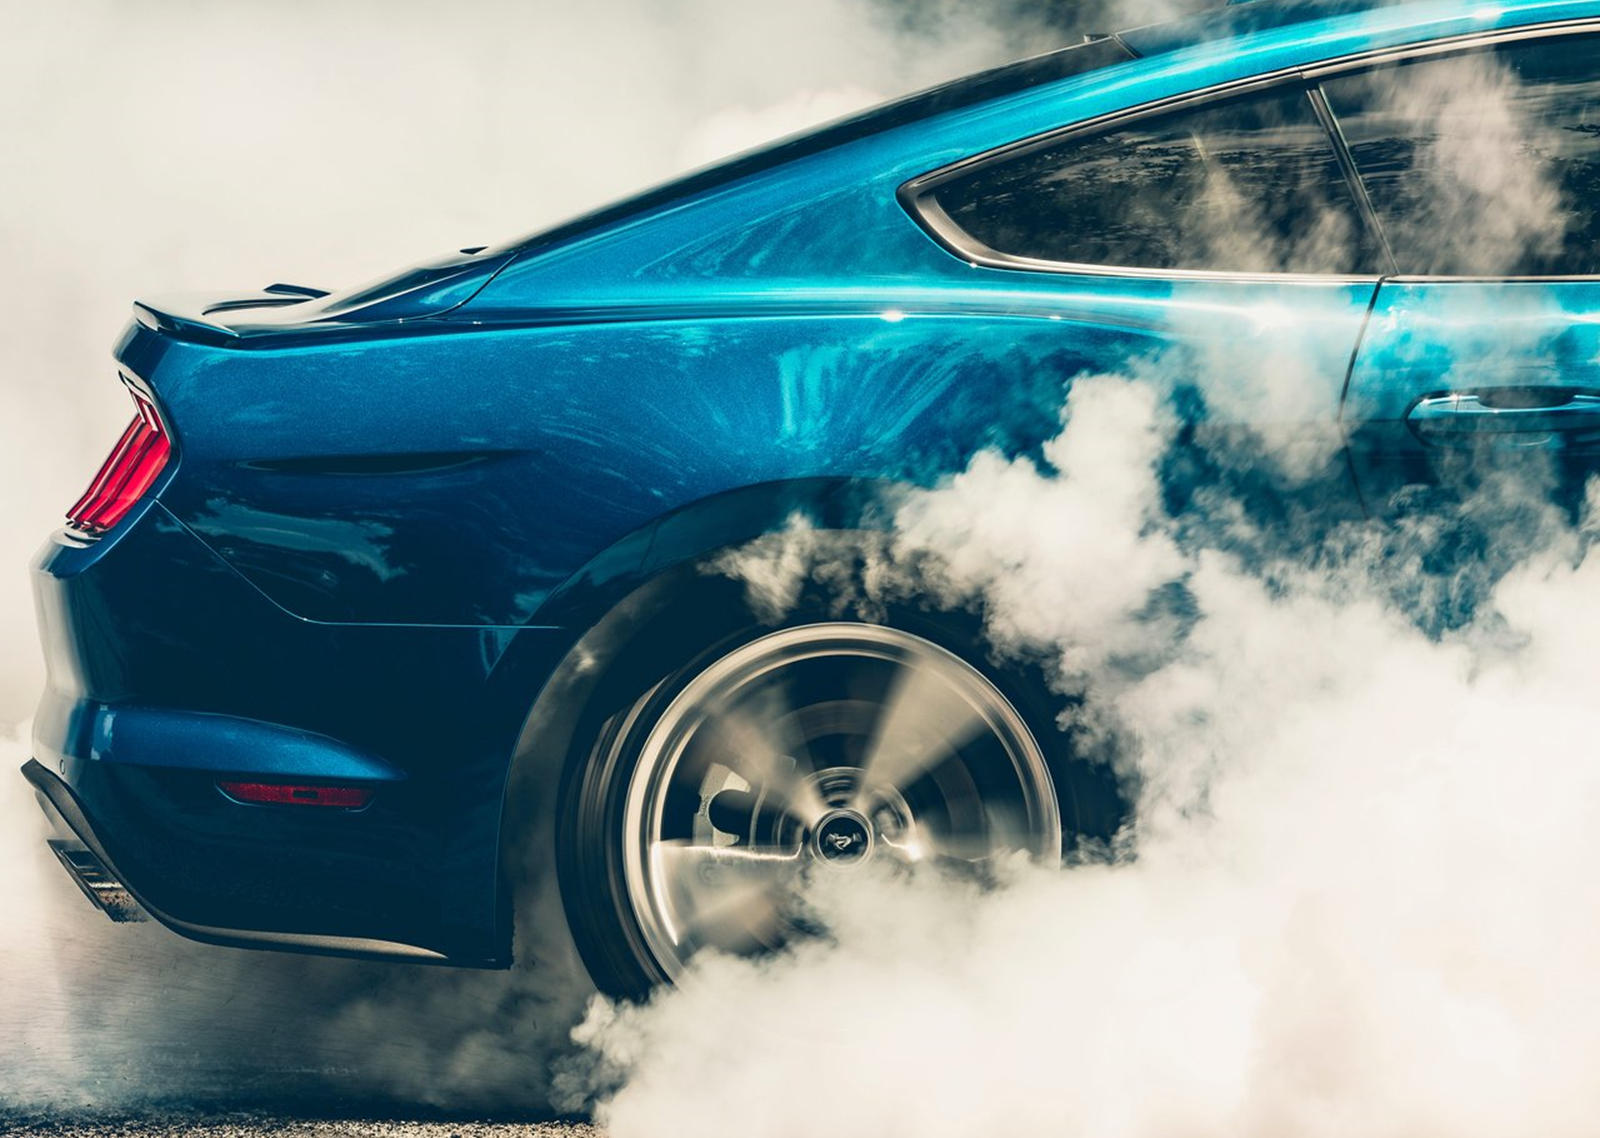 Ford's Plan To Boost Mustang Sales Will Make Buyers Happy